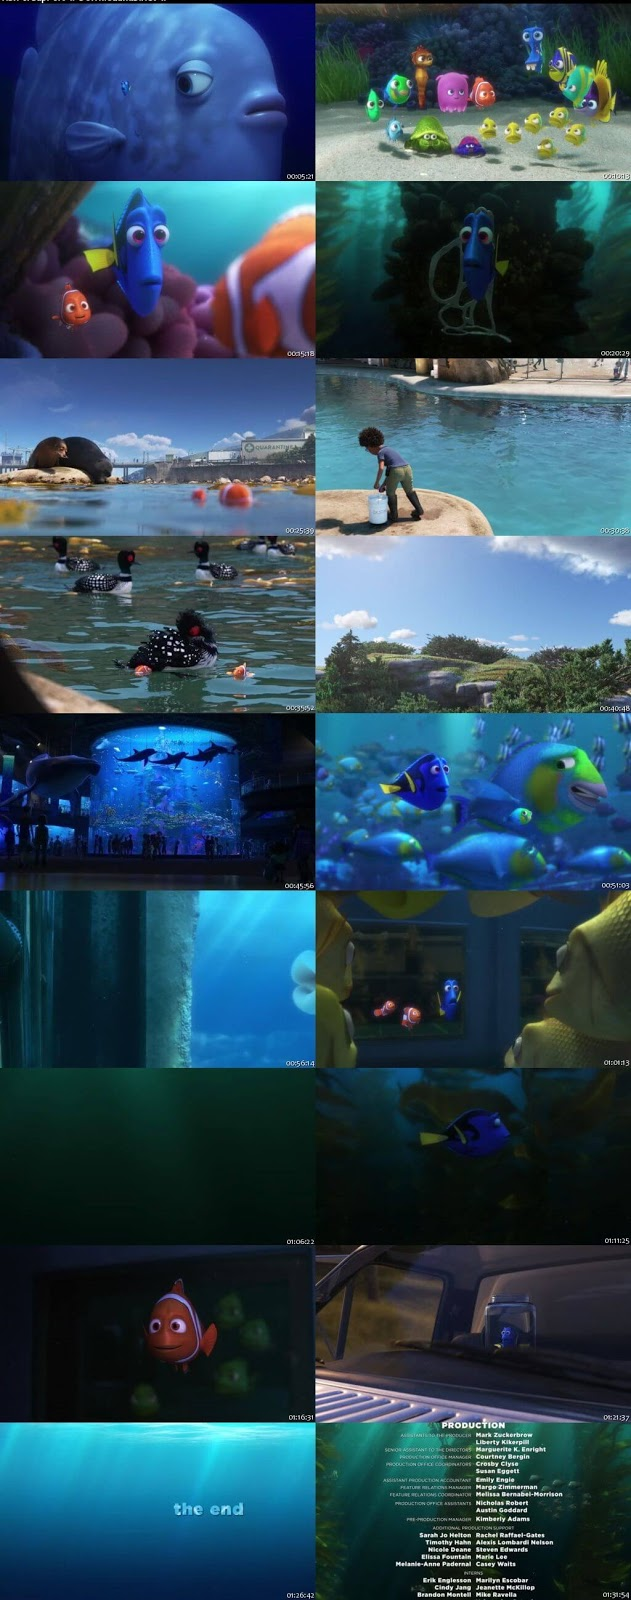 finding dory 720p bluray in hindi